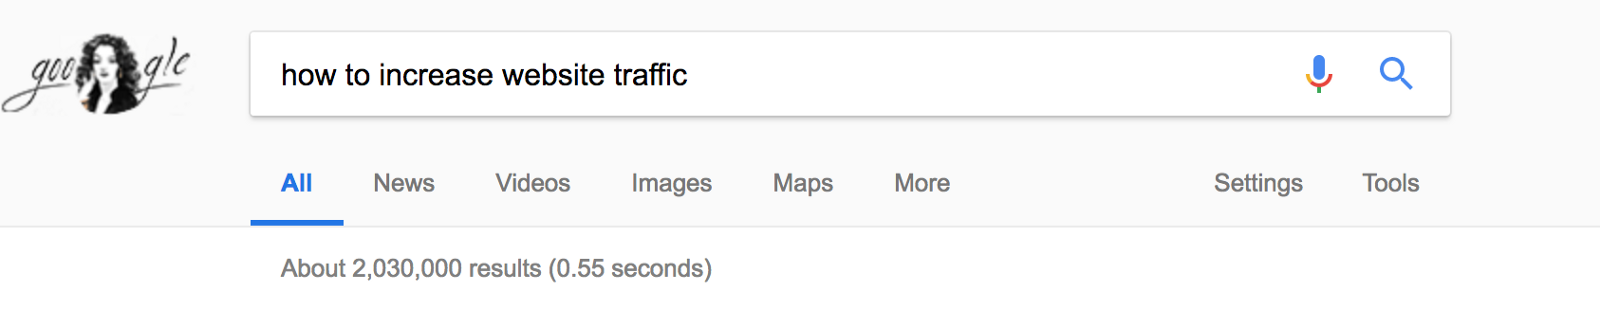 "Google Search Result for ""How to increase Website Traffic?"""